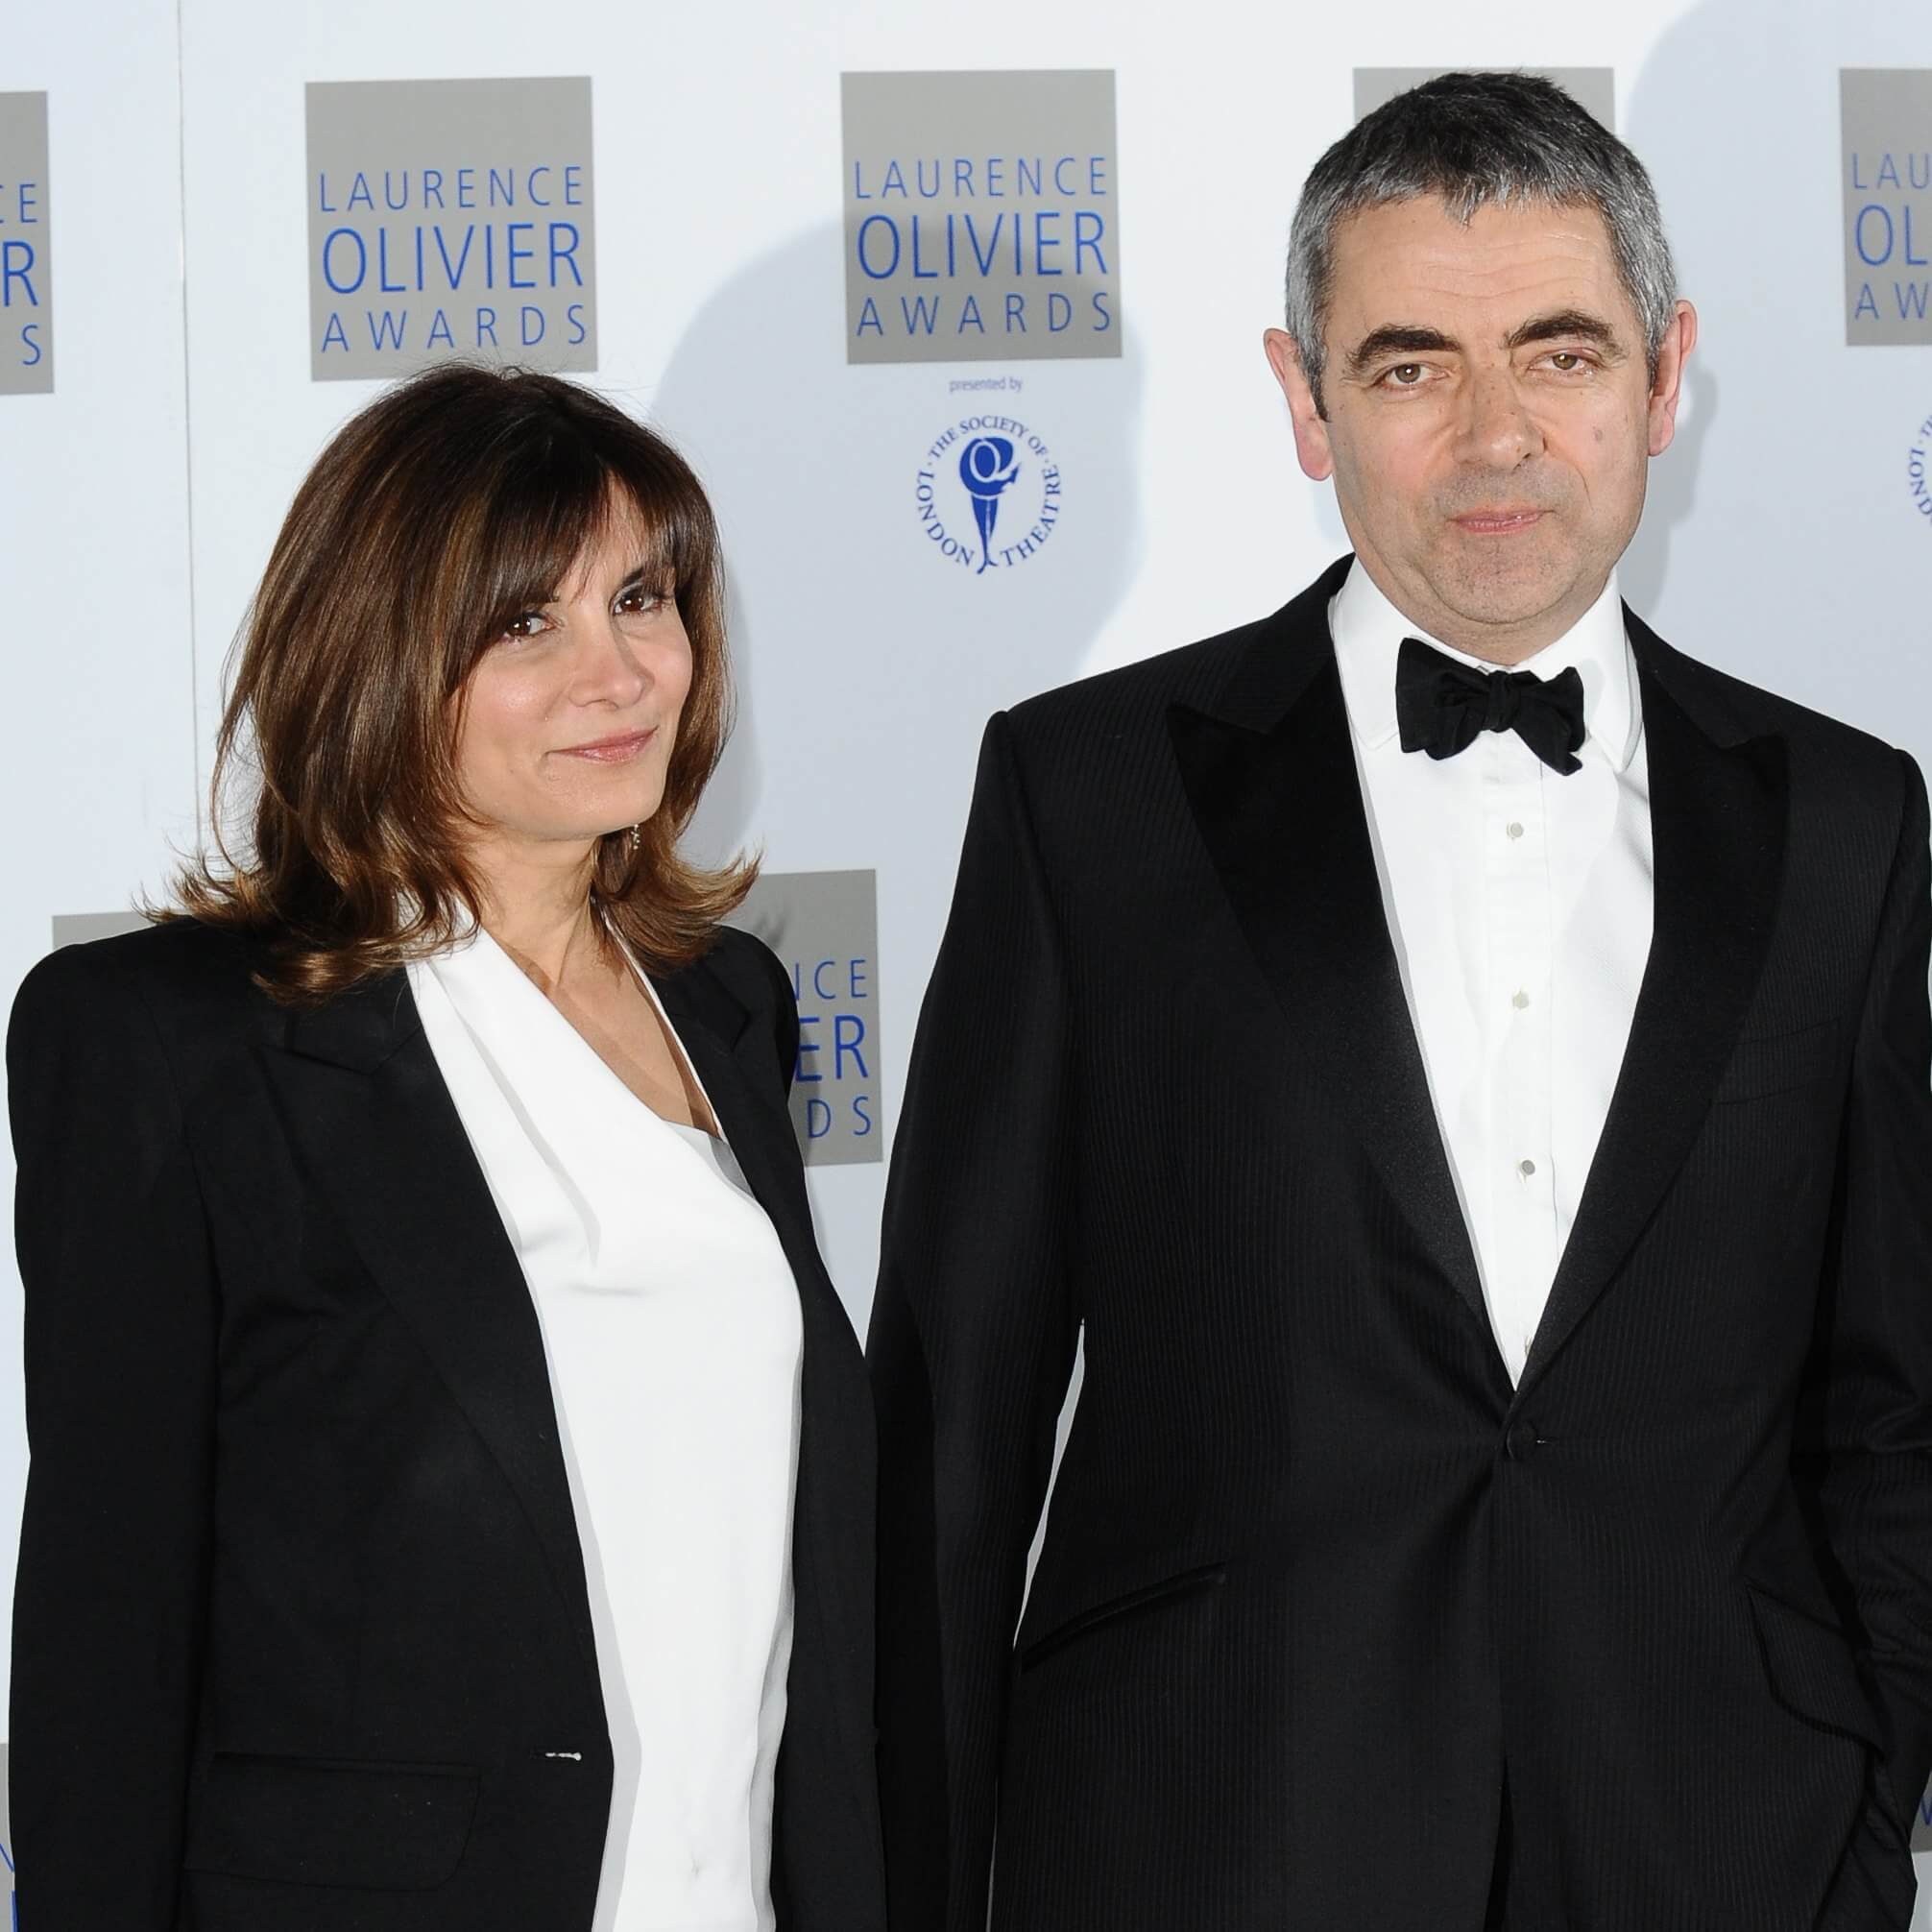 Rowan Atkinson and Sunetra Sastry